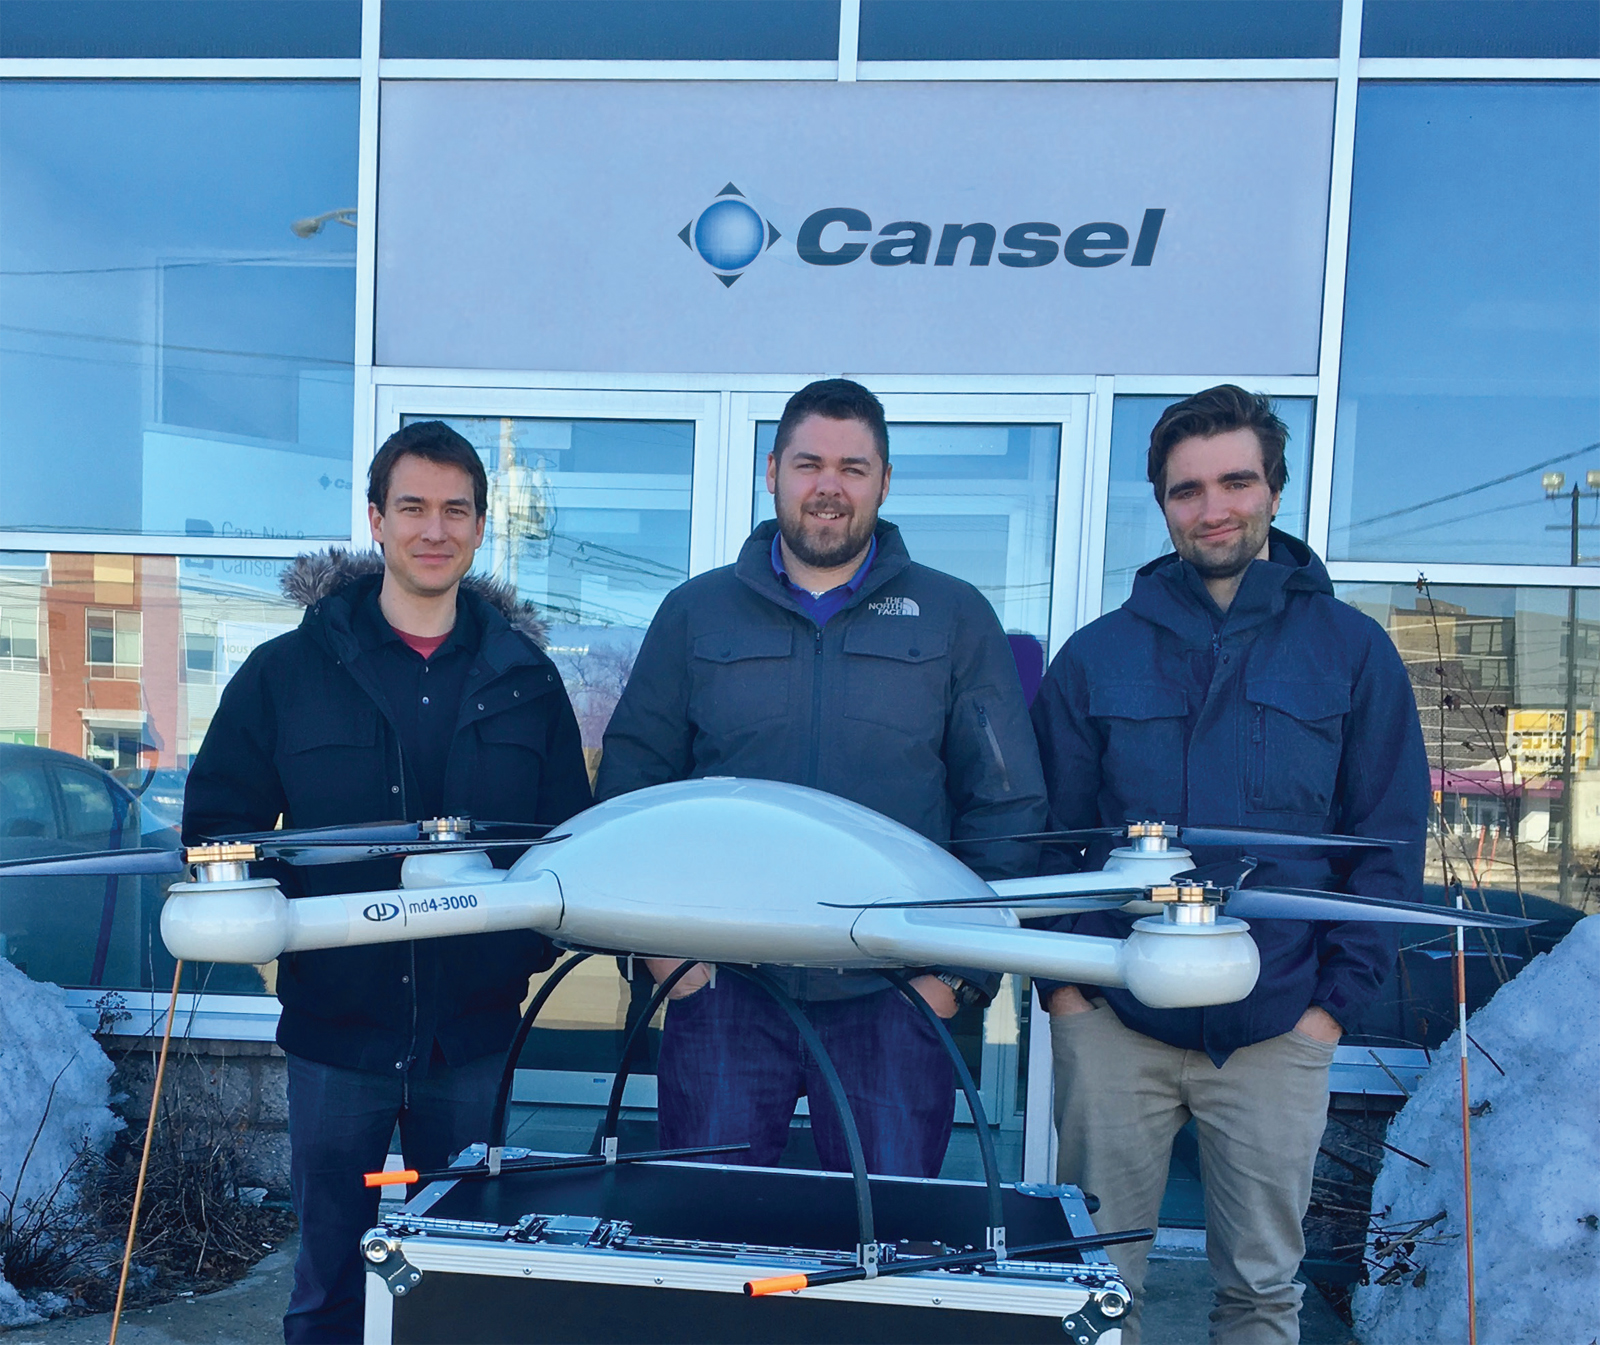 WORK SMARTER WITH CANSEL AND MICRODRONES®